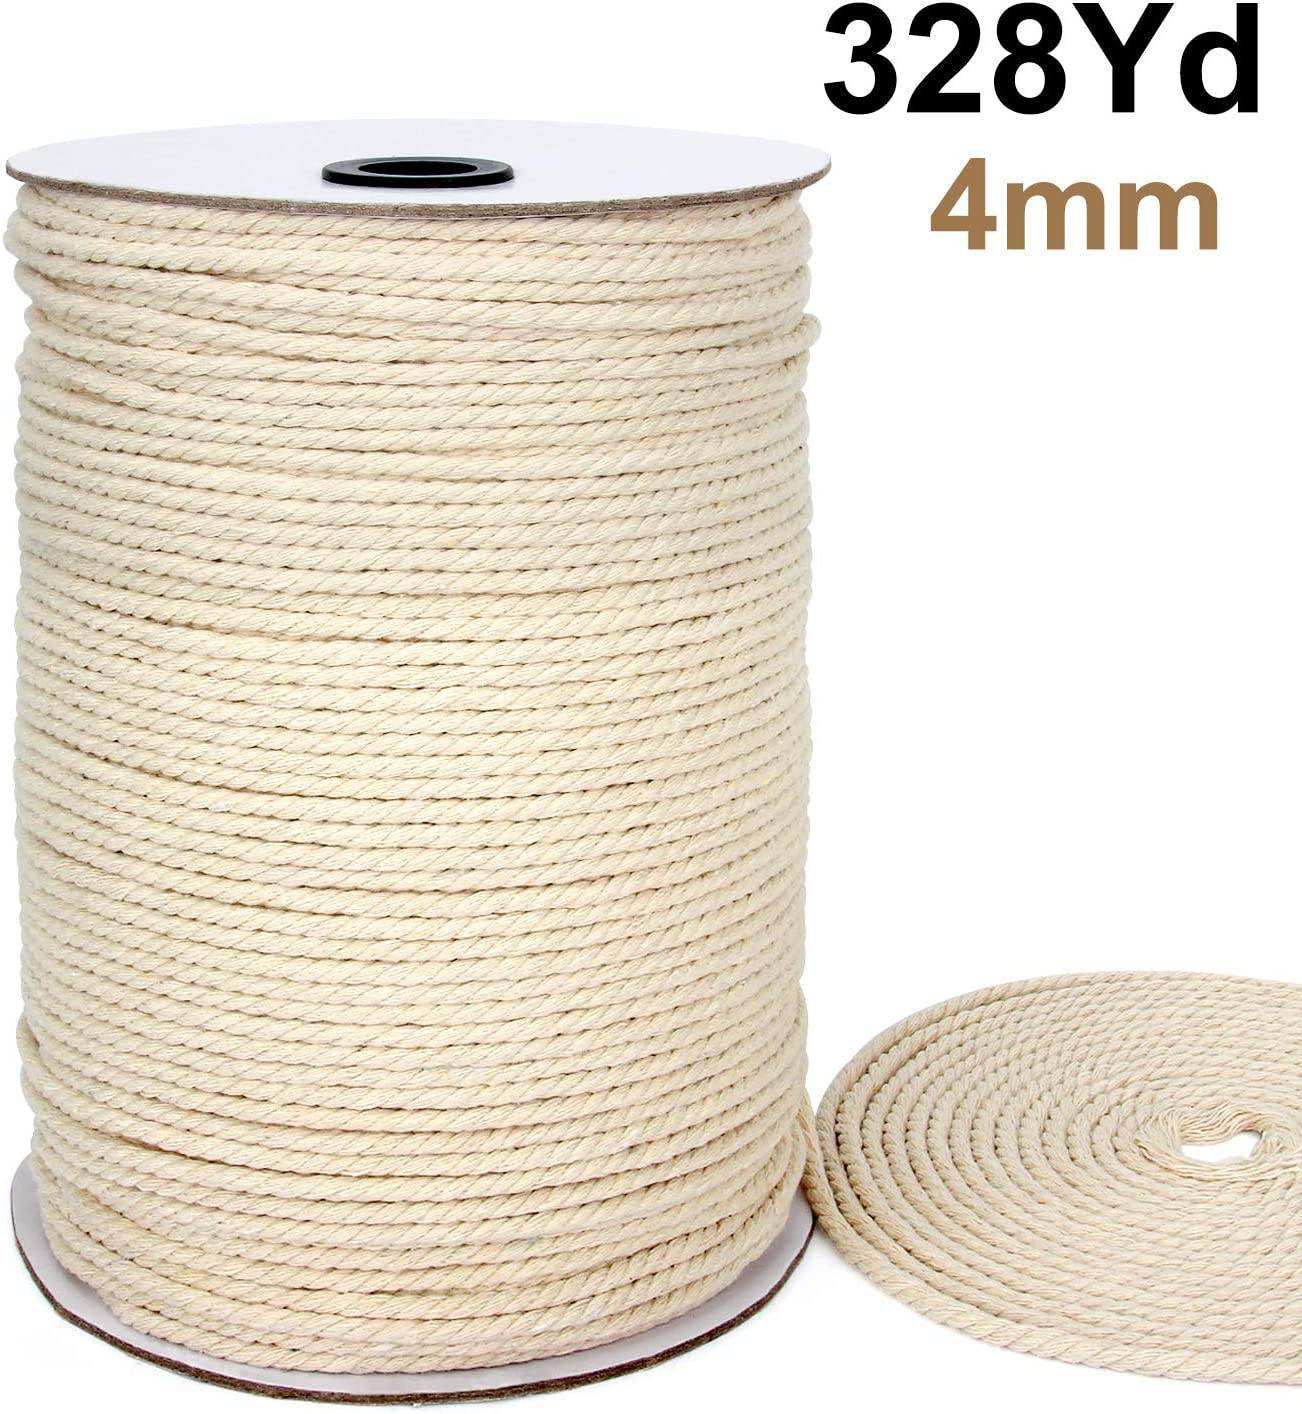 Natural Cotton Cord 4mm Macrame Cord 260 Meters Macrame Cord Macrame Rope